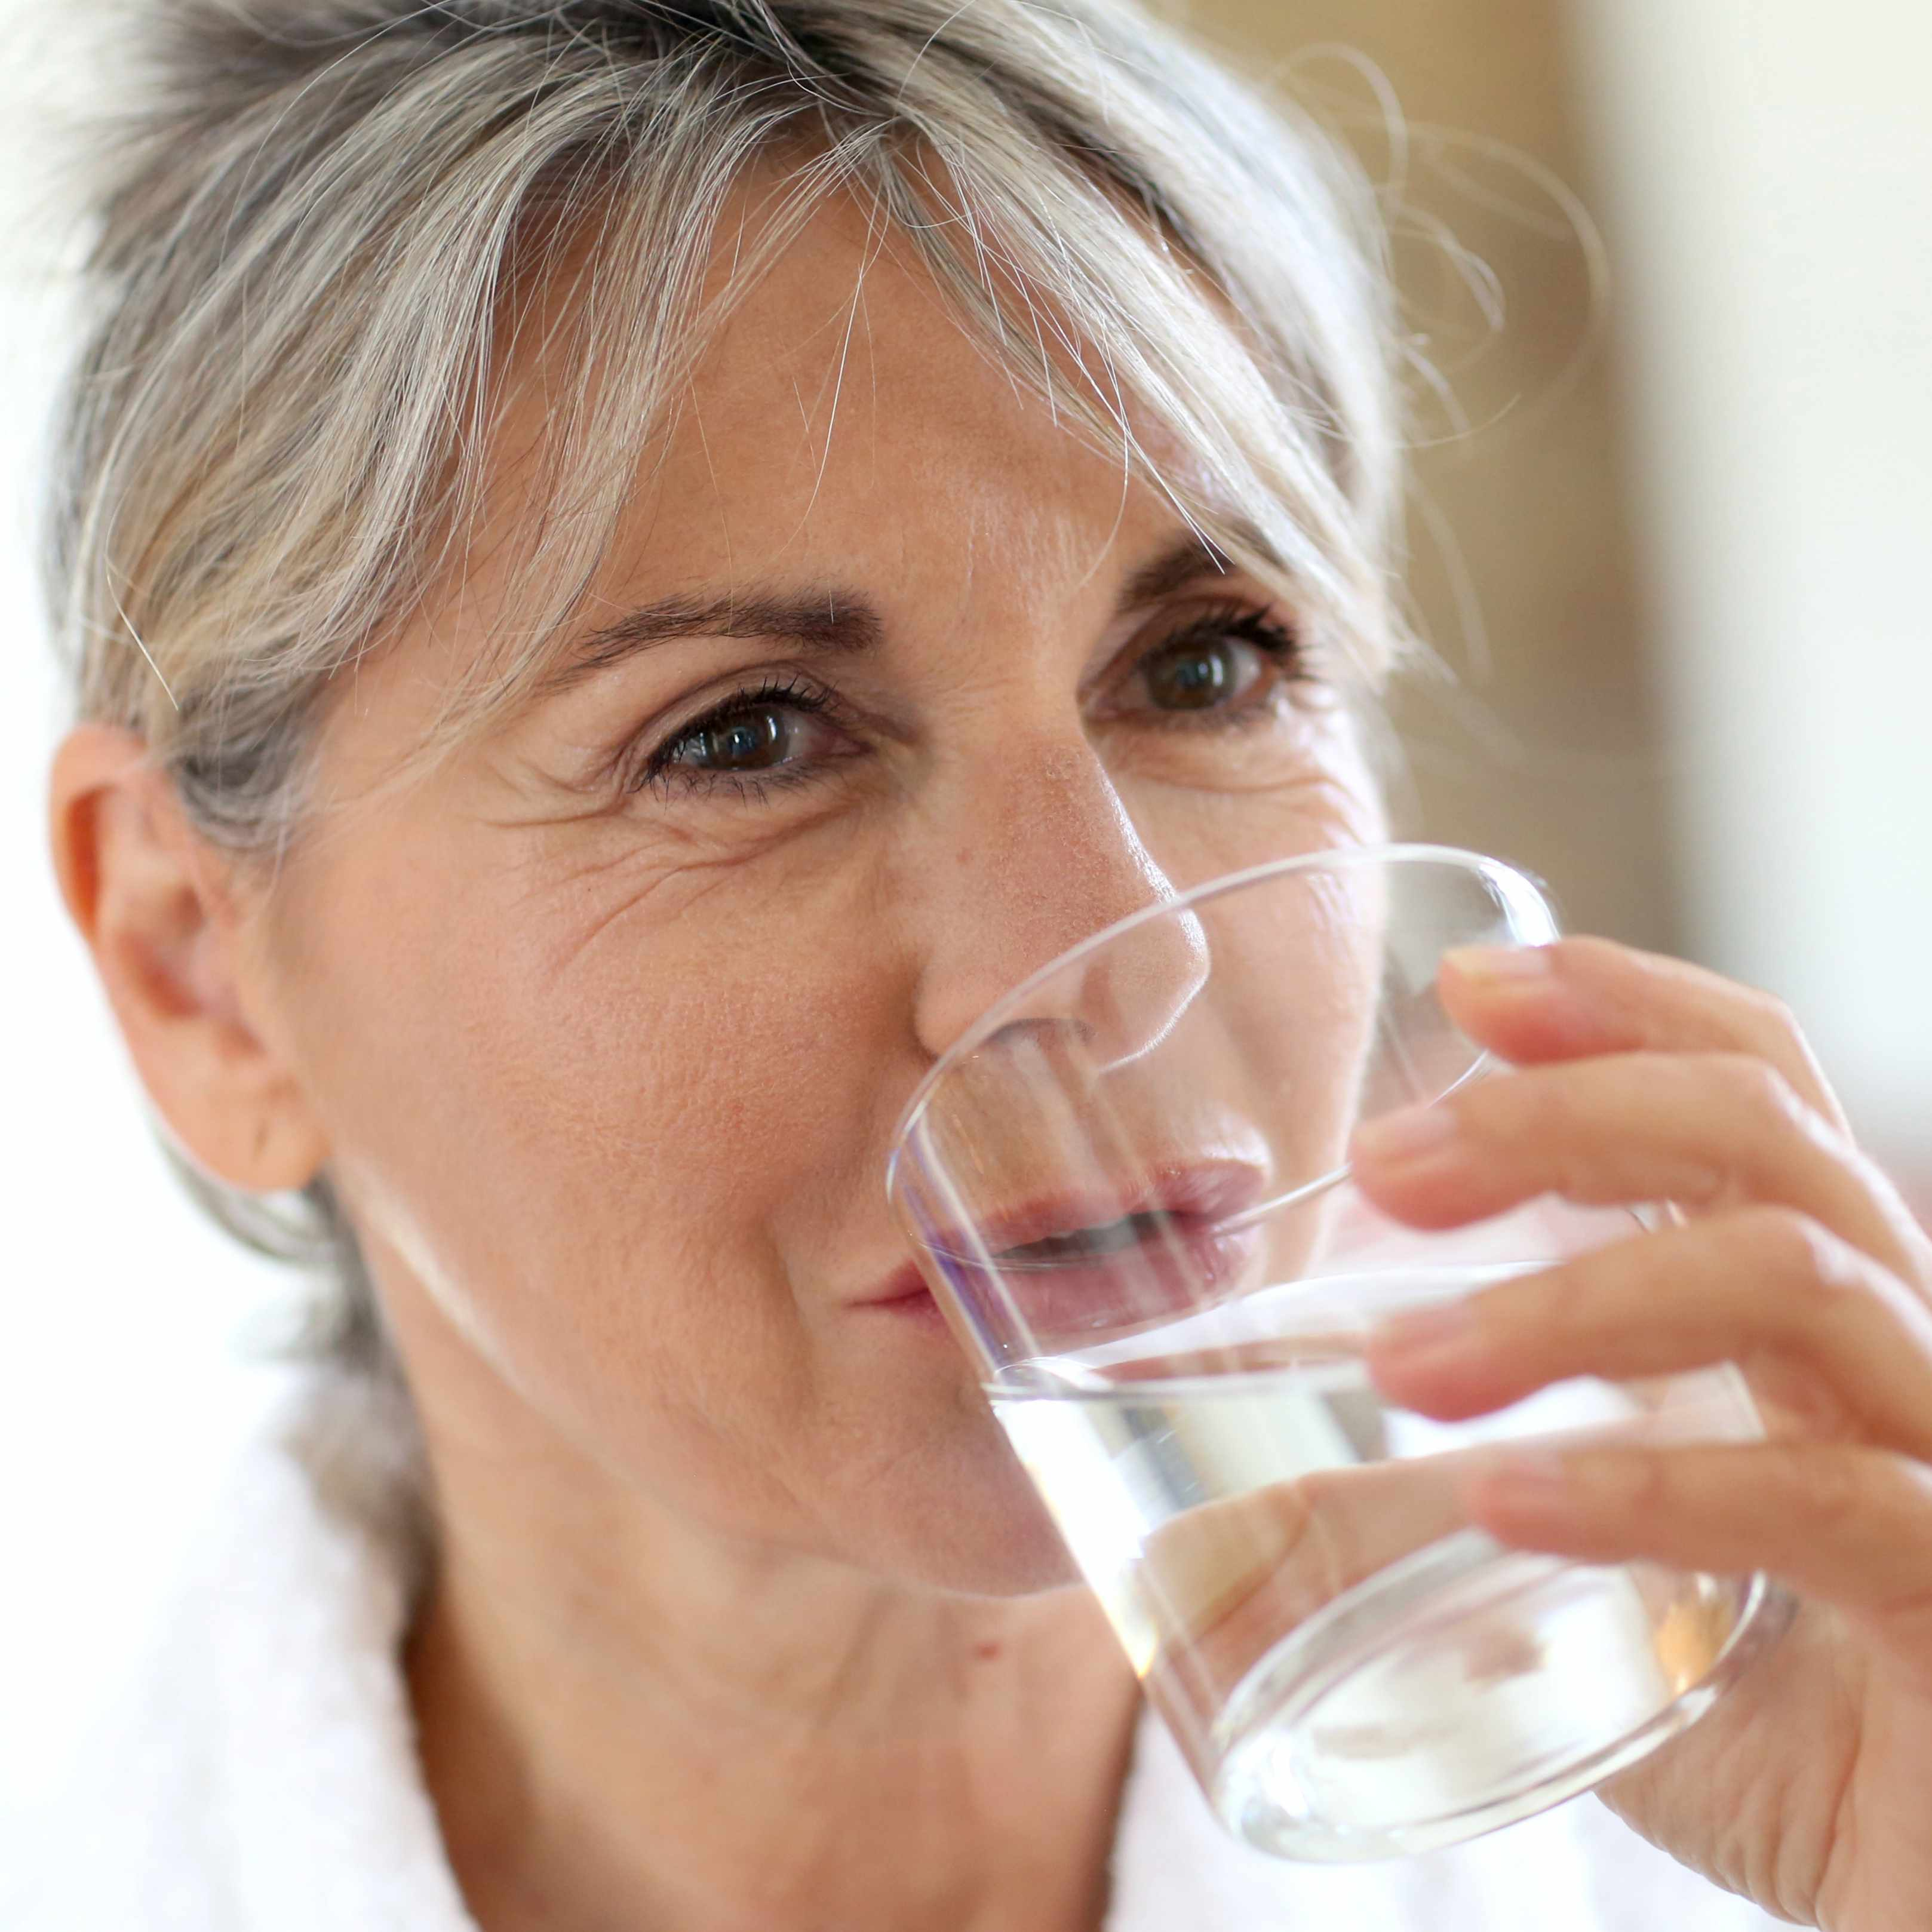 a middle-aged woman drinking a glass of water to stay hydrated